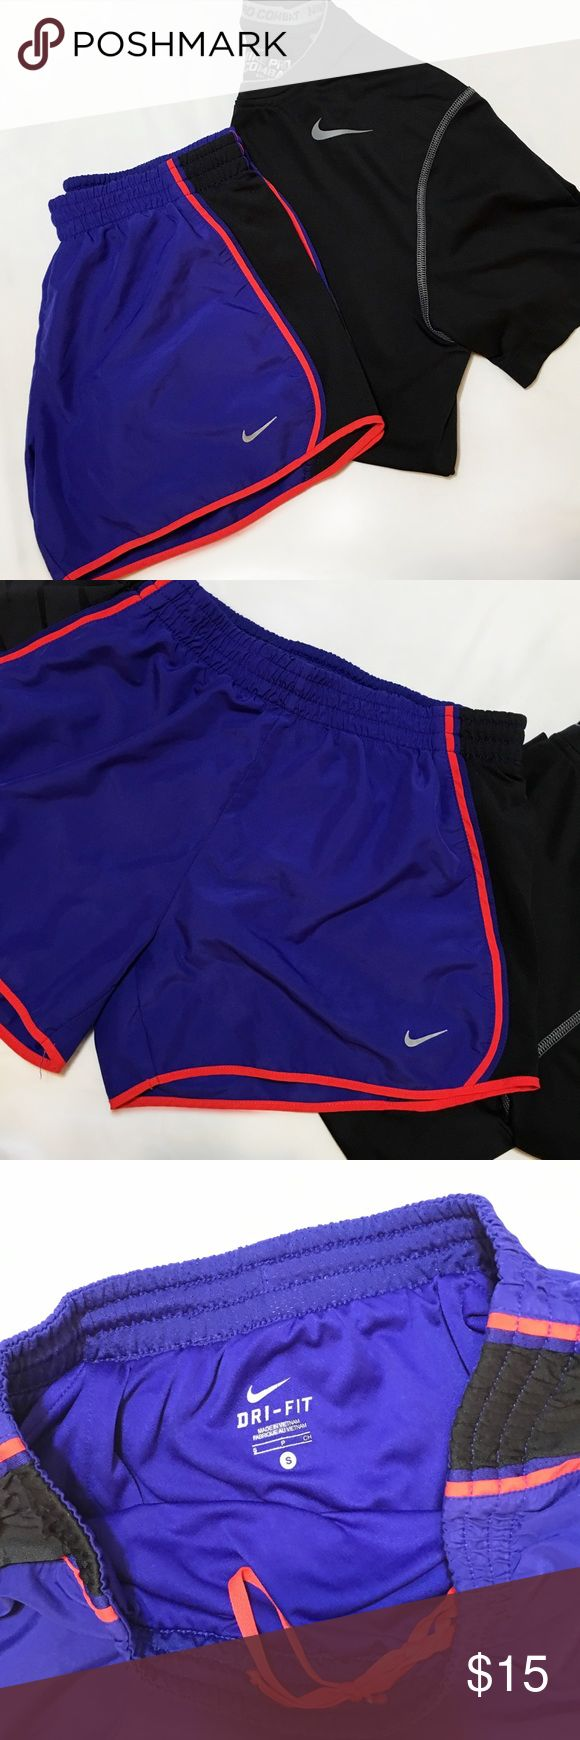 Nike Dri-Fit Shorts New Nike Dri-Fit shorts Nike Shorts